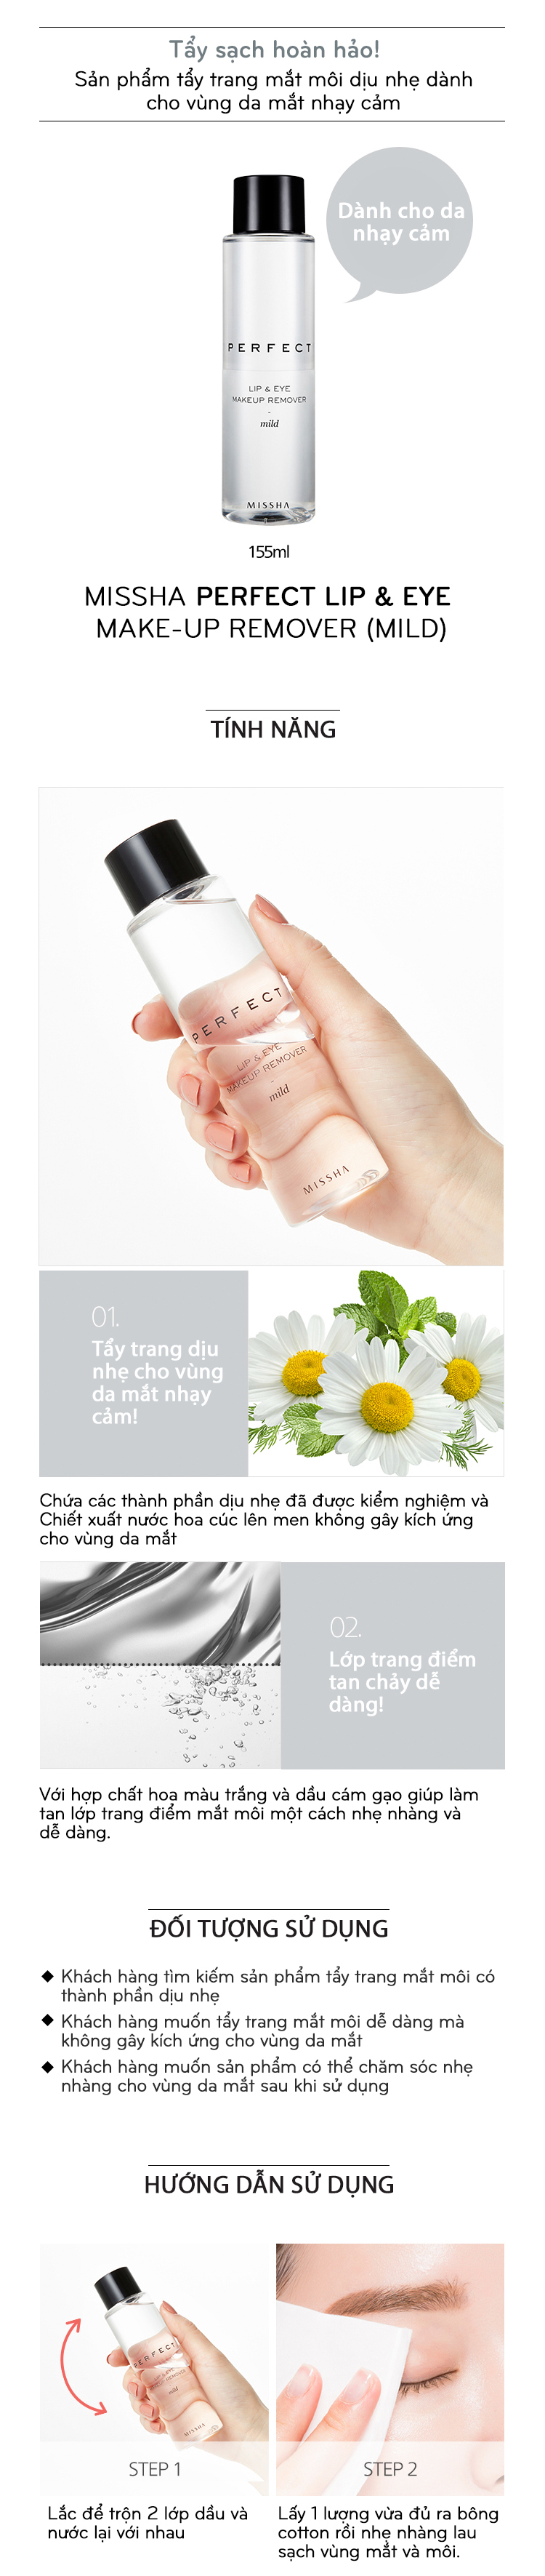 Nước Tẩy Trang Mắt Môi MISSHA Perfect Lip & Eye Make-Up Remover 155ml